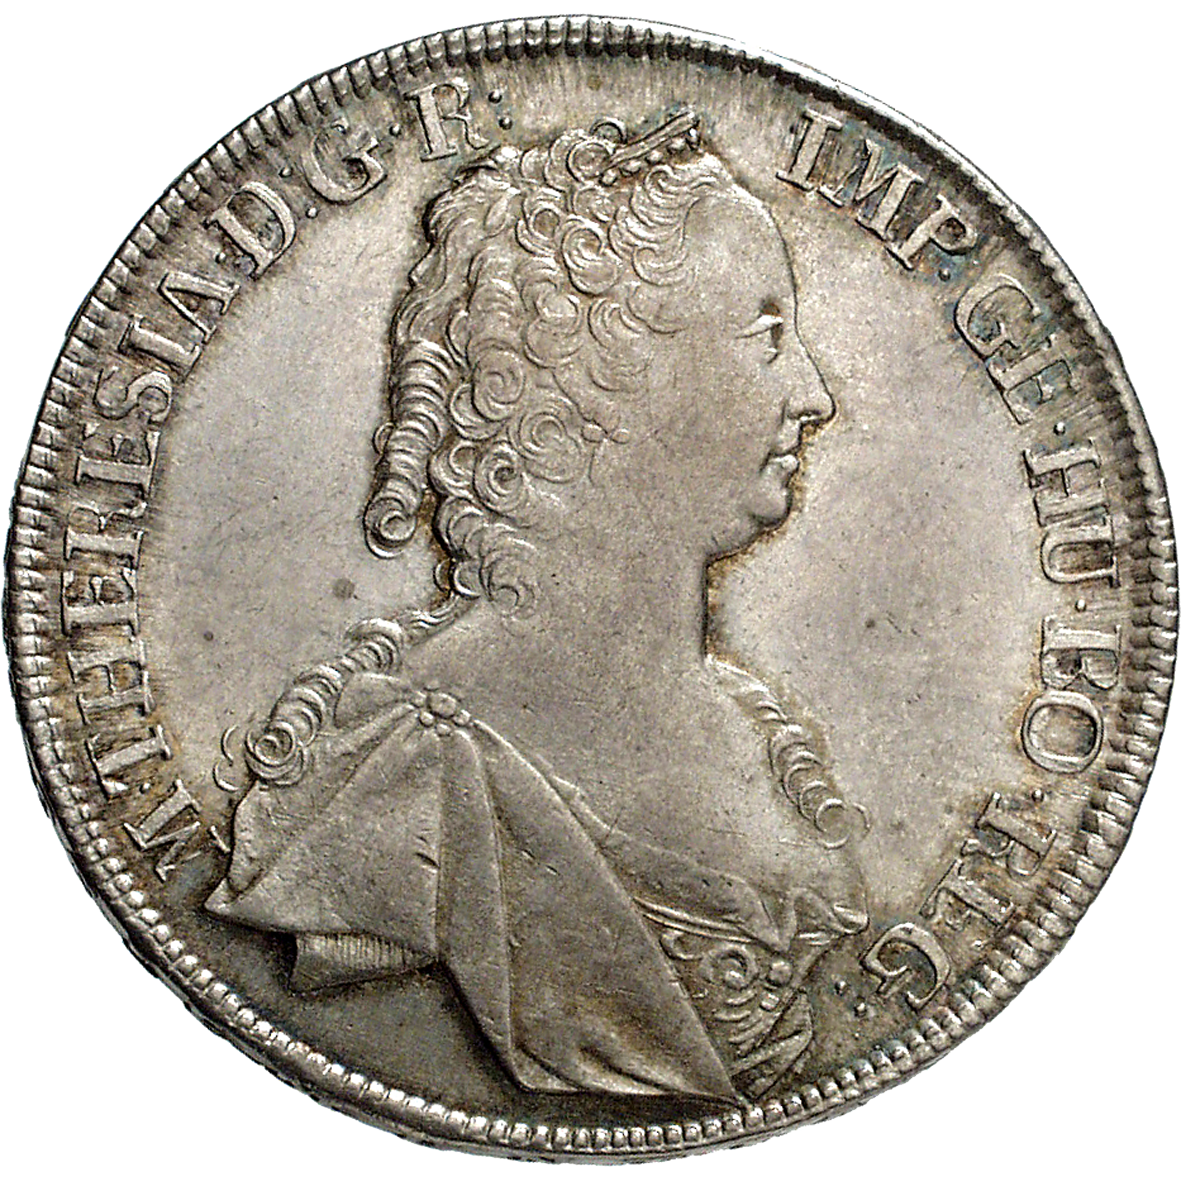 Holy Roman Empire, Archduchy of Austria, Maria Theresa, Taler 1751 (obverse)